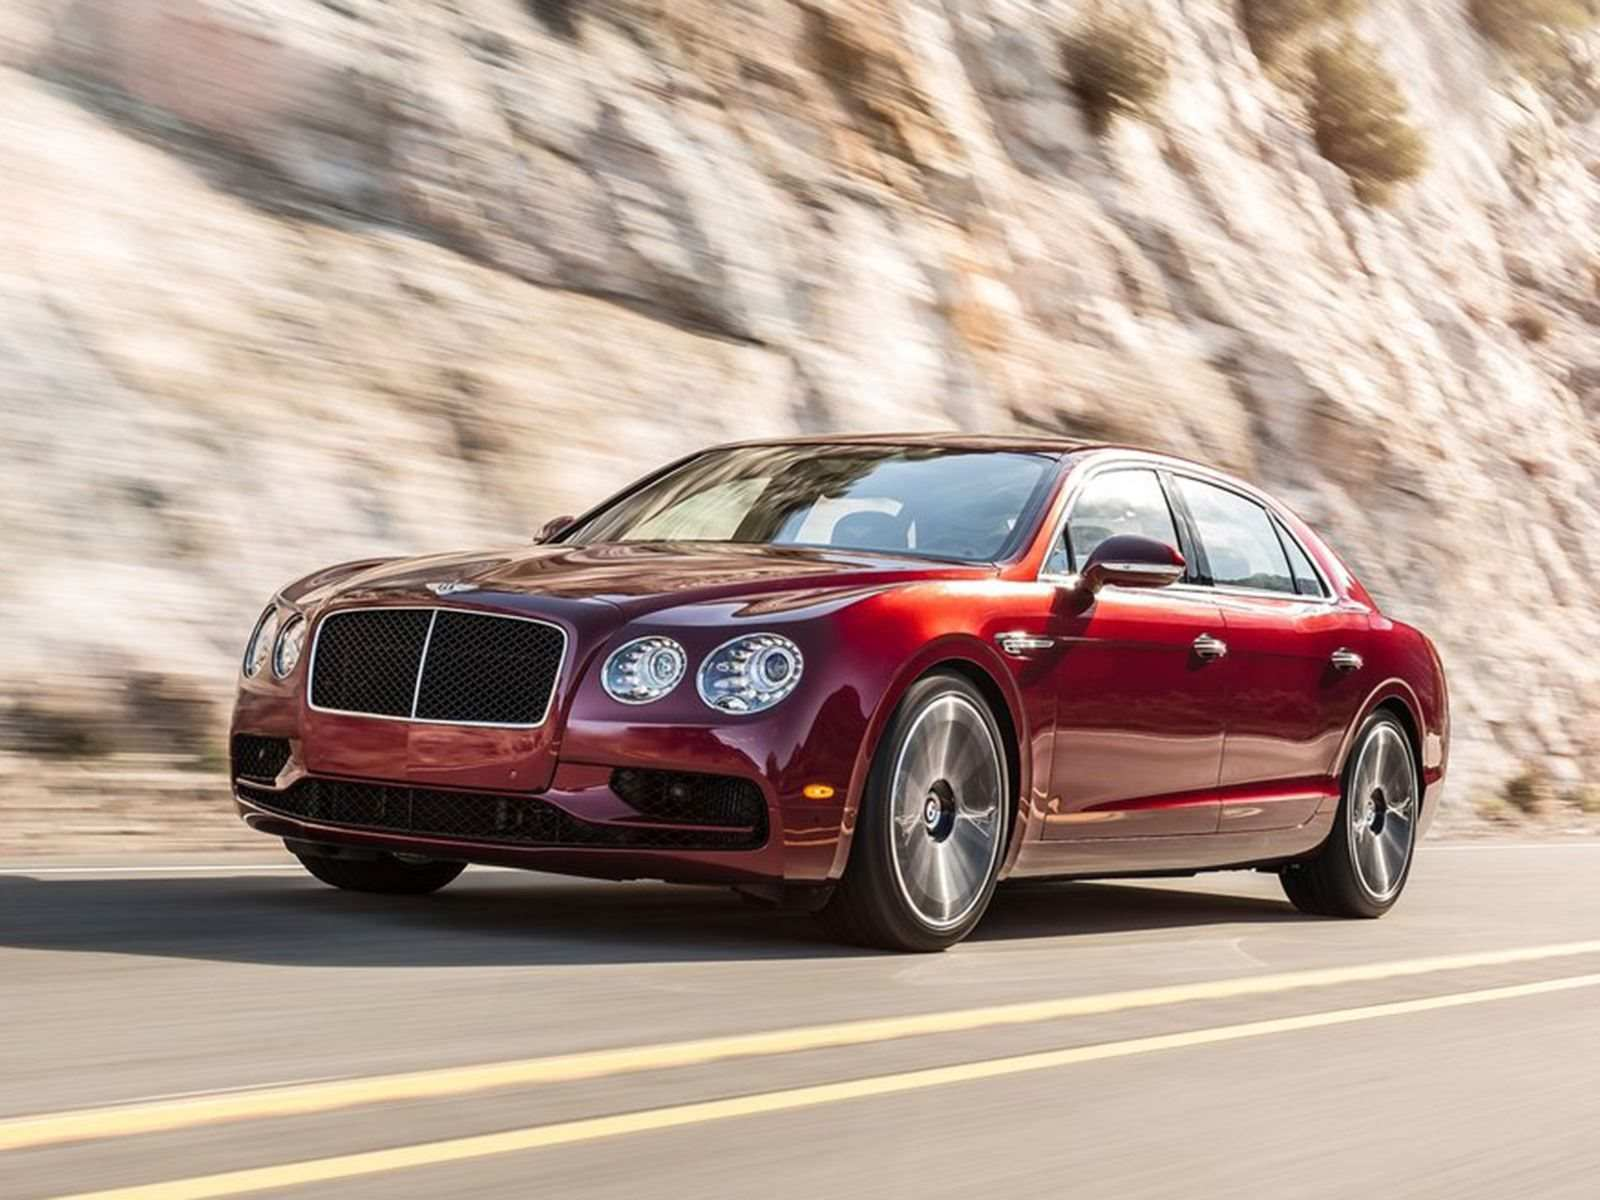 74 Great 2019 Bentley Flying Spur Concept with 2019 Bentley Flying Spur